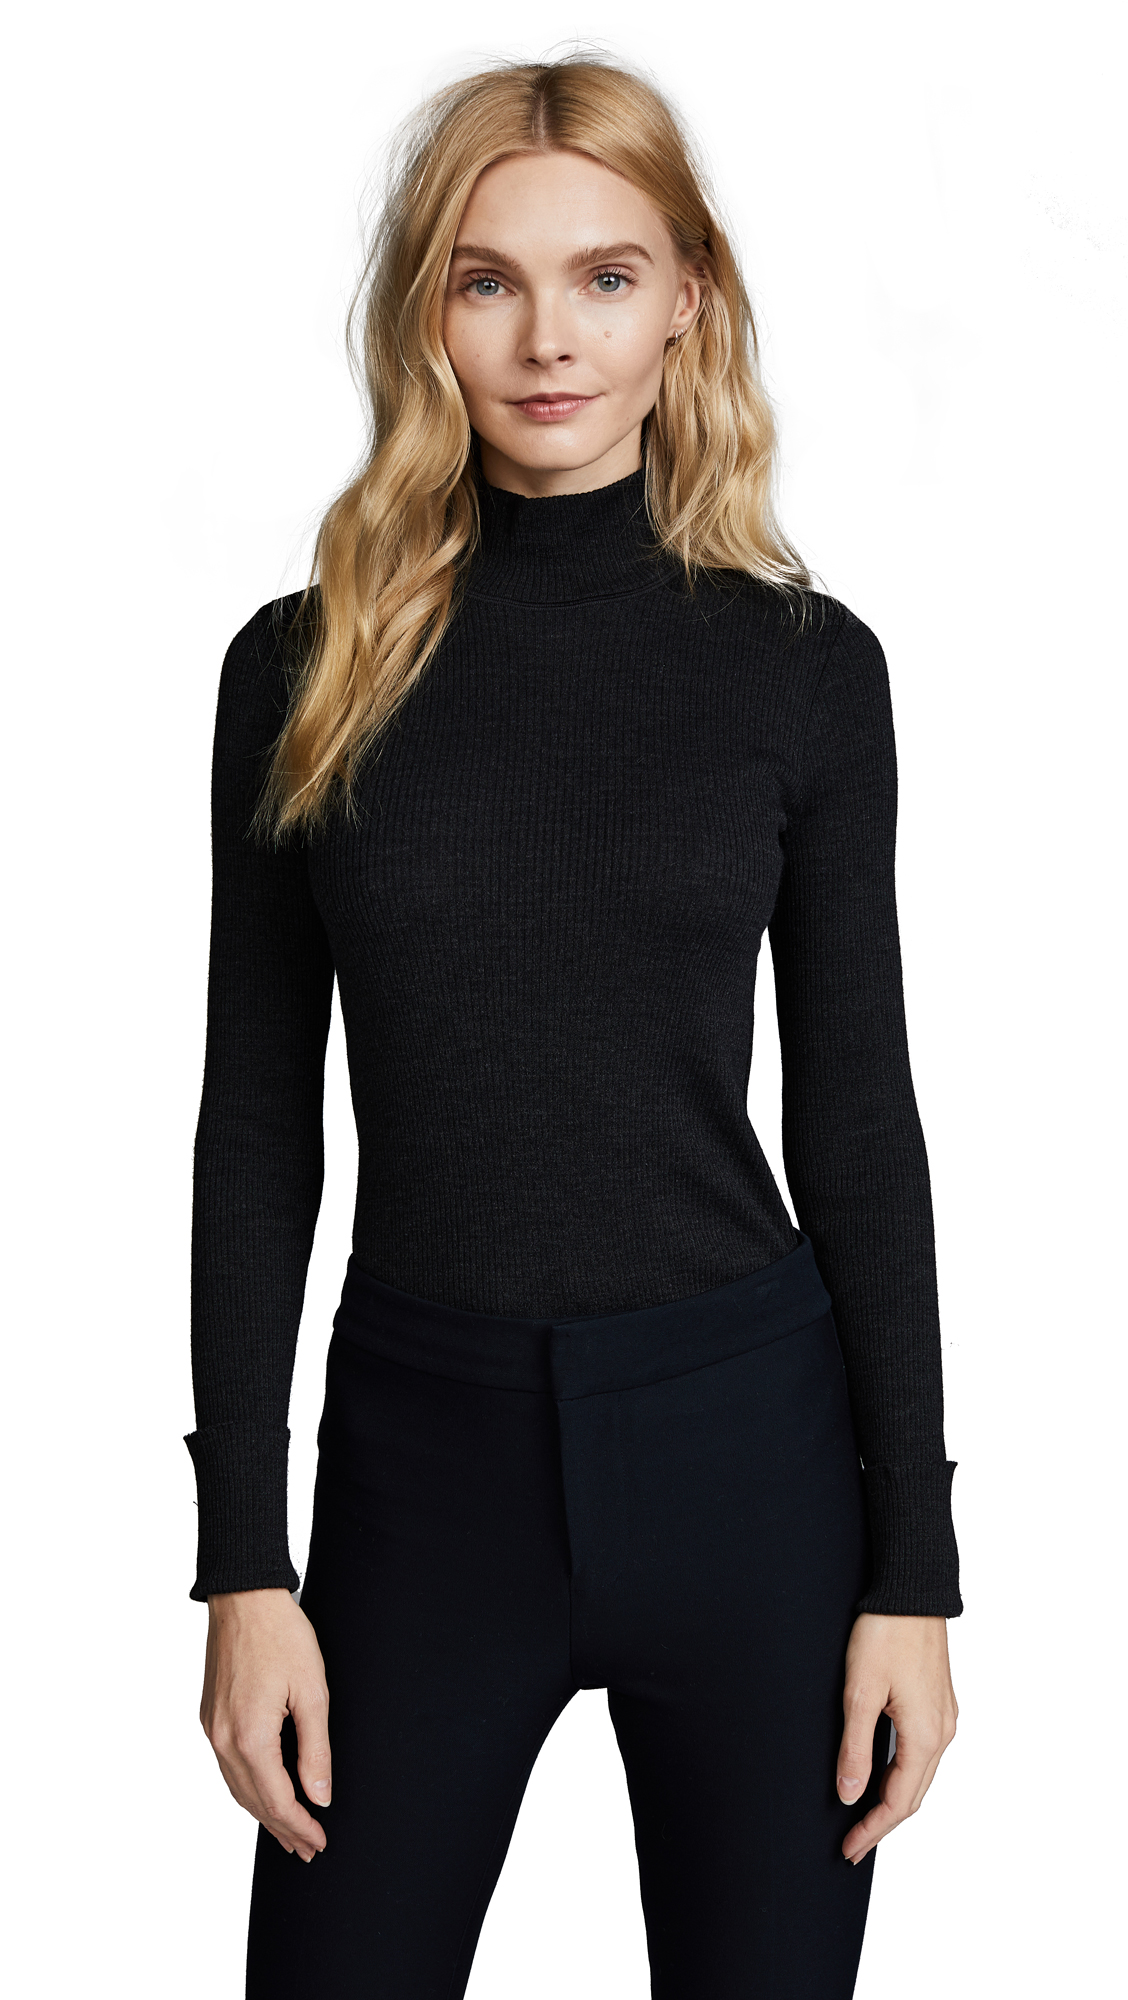 Theory Basic Sweater - Black